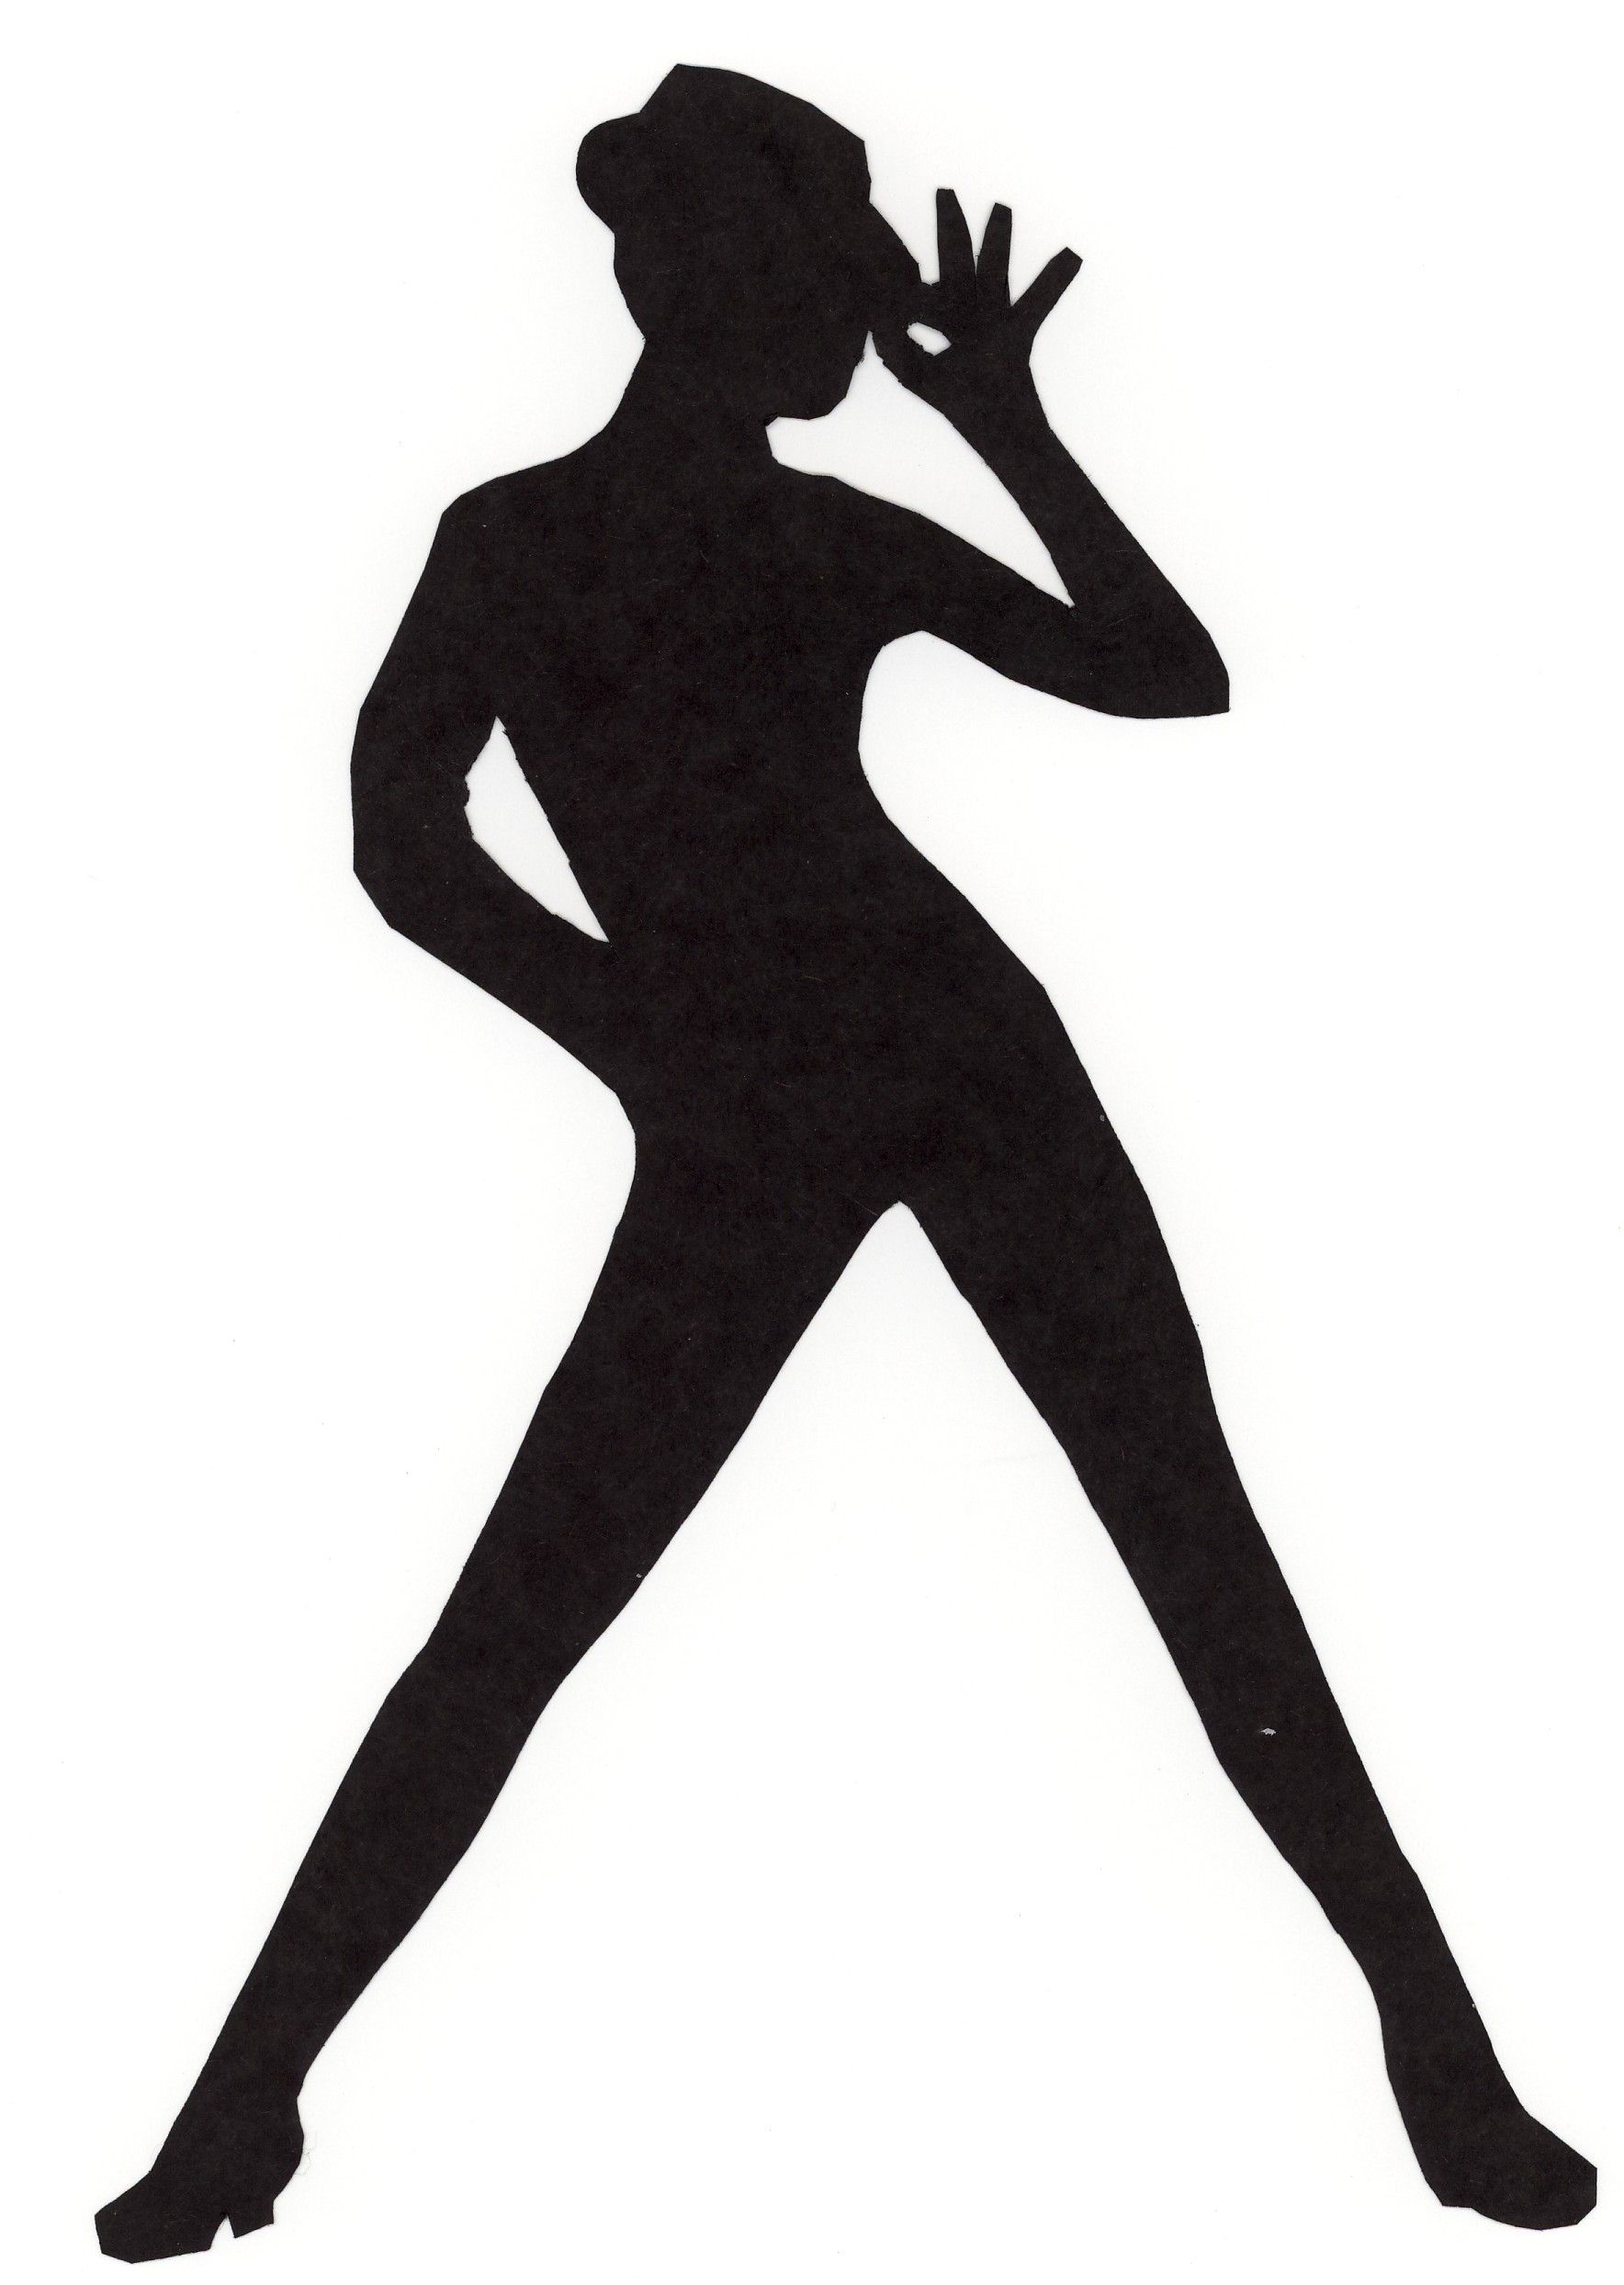 Dancer silhouette shadow forms. Jazz clipart jazz dancing